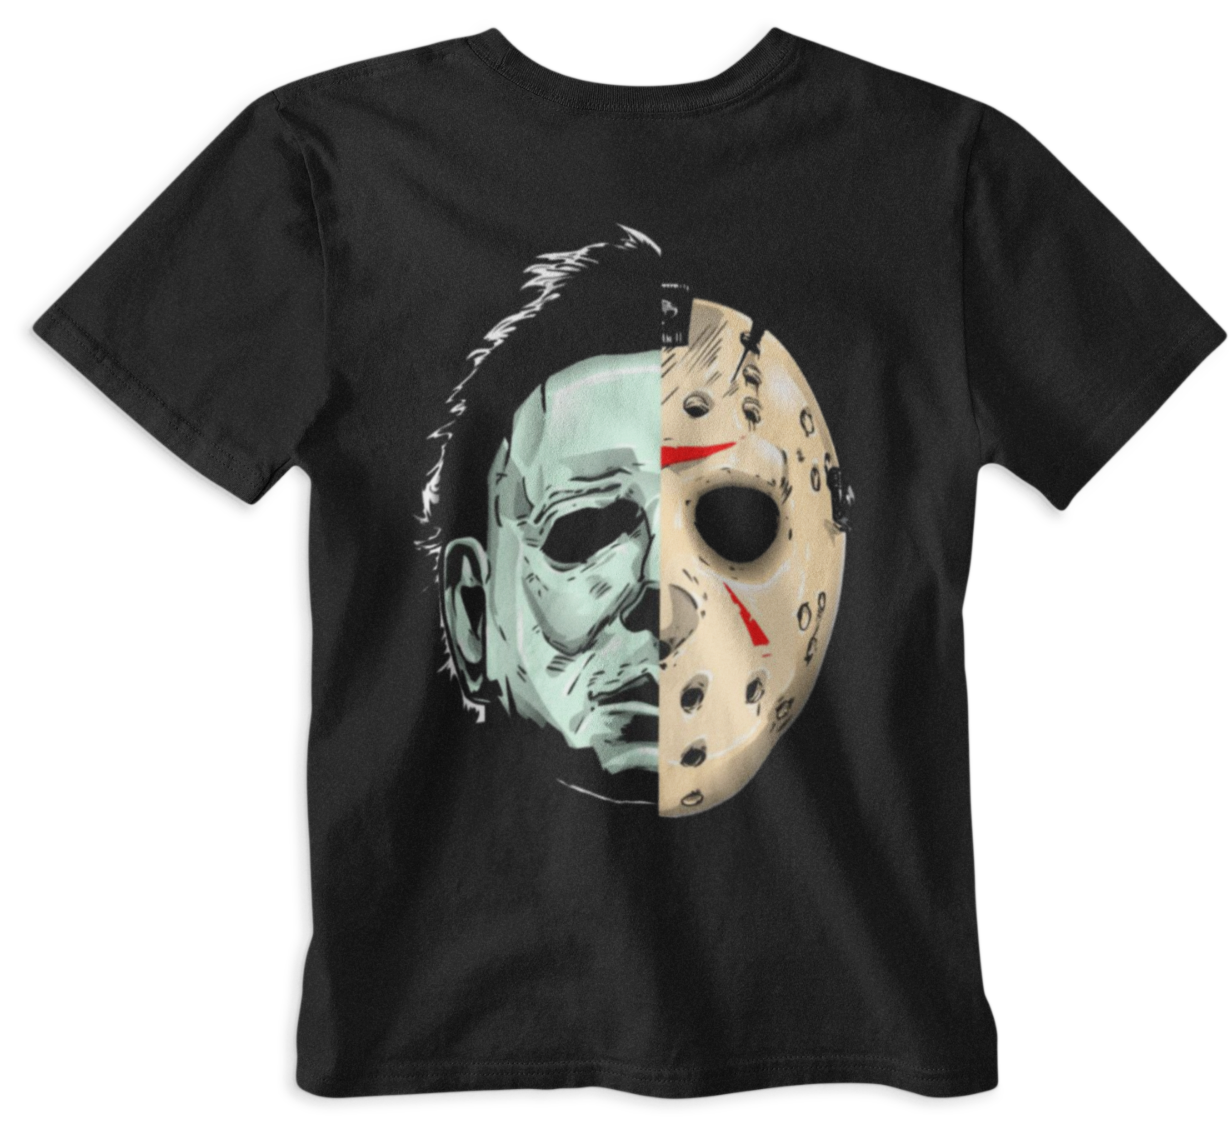 Halloween T-shirt Friday 13th Horror slasher Movie Face mask Film retro Tee gift image